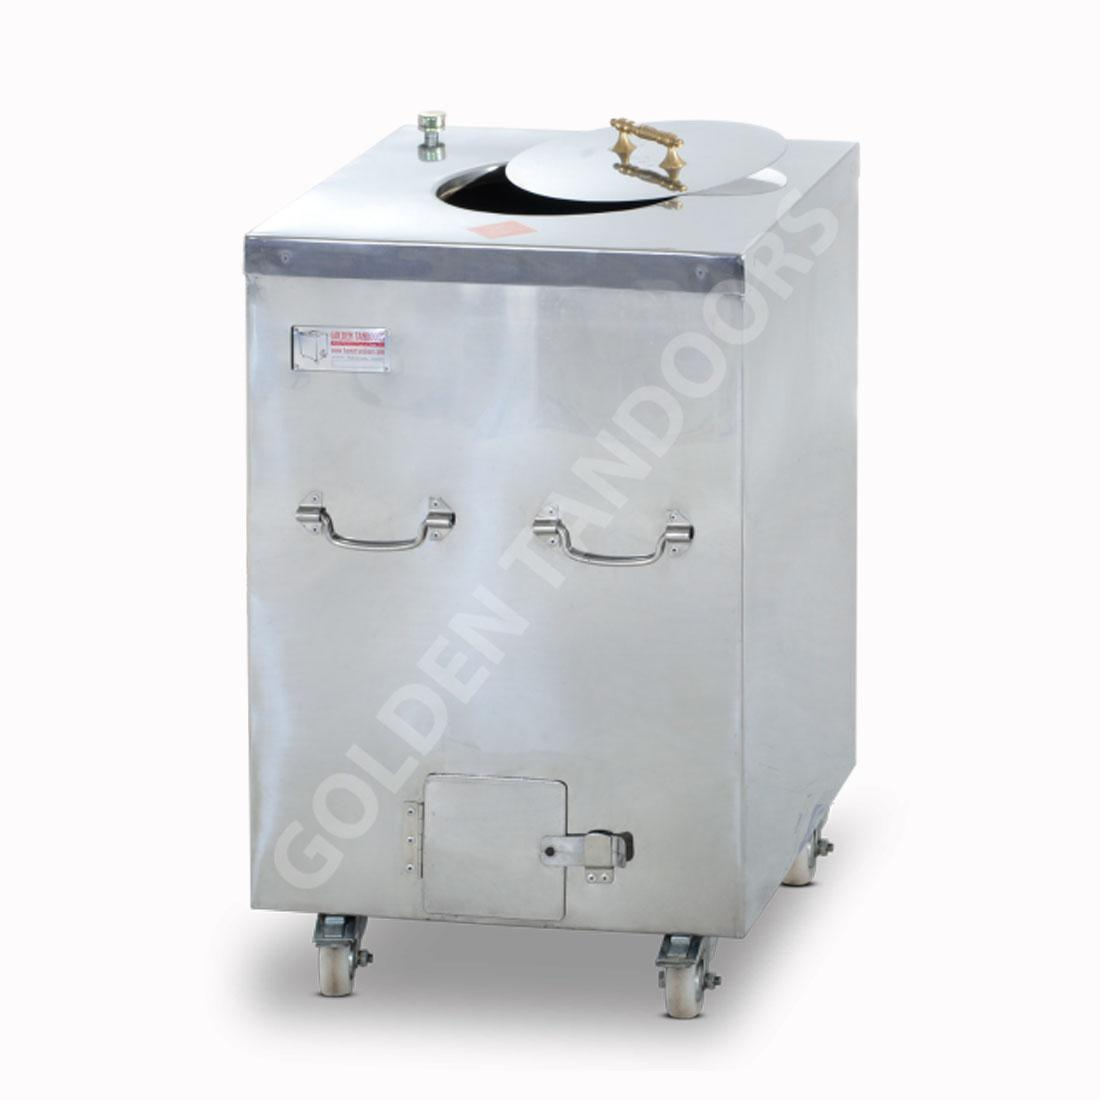 GT-610 Charcoal Tandoor Oven Square